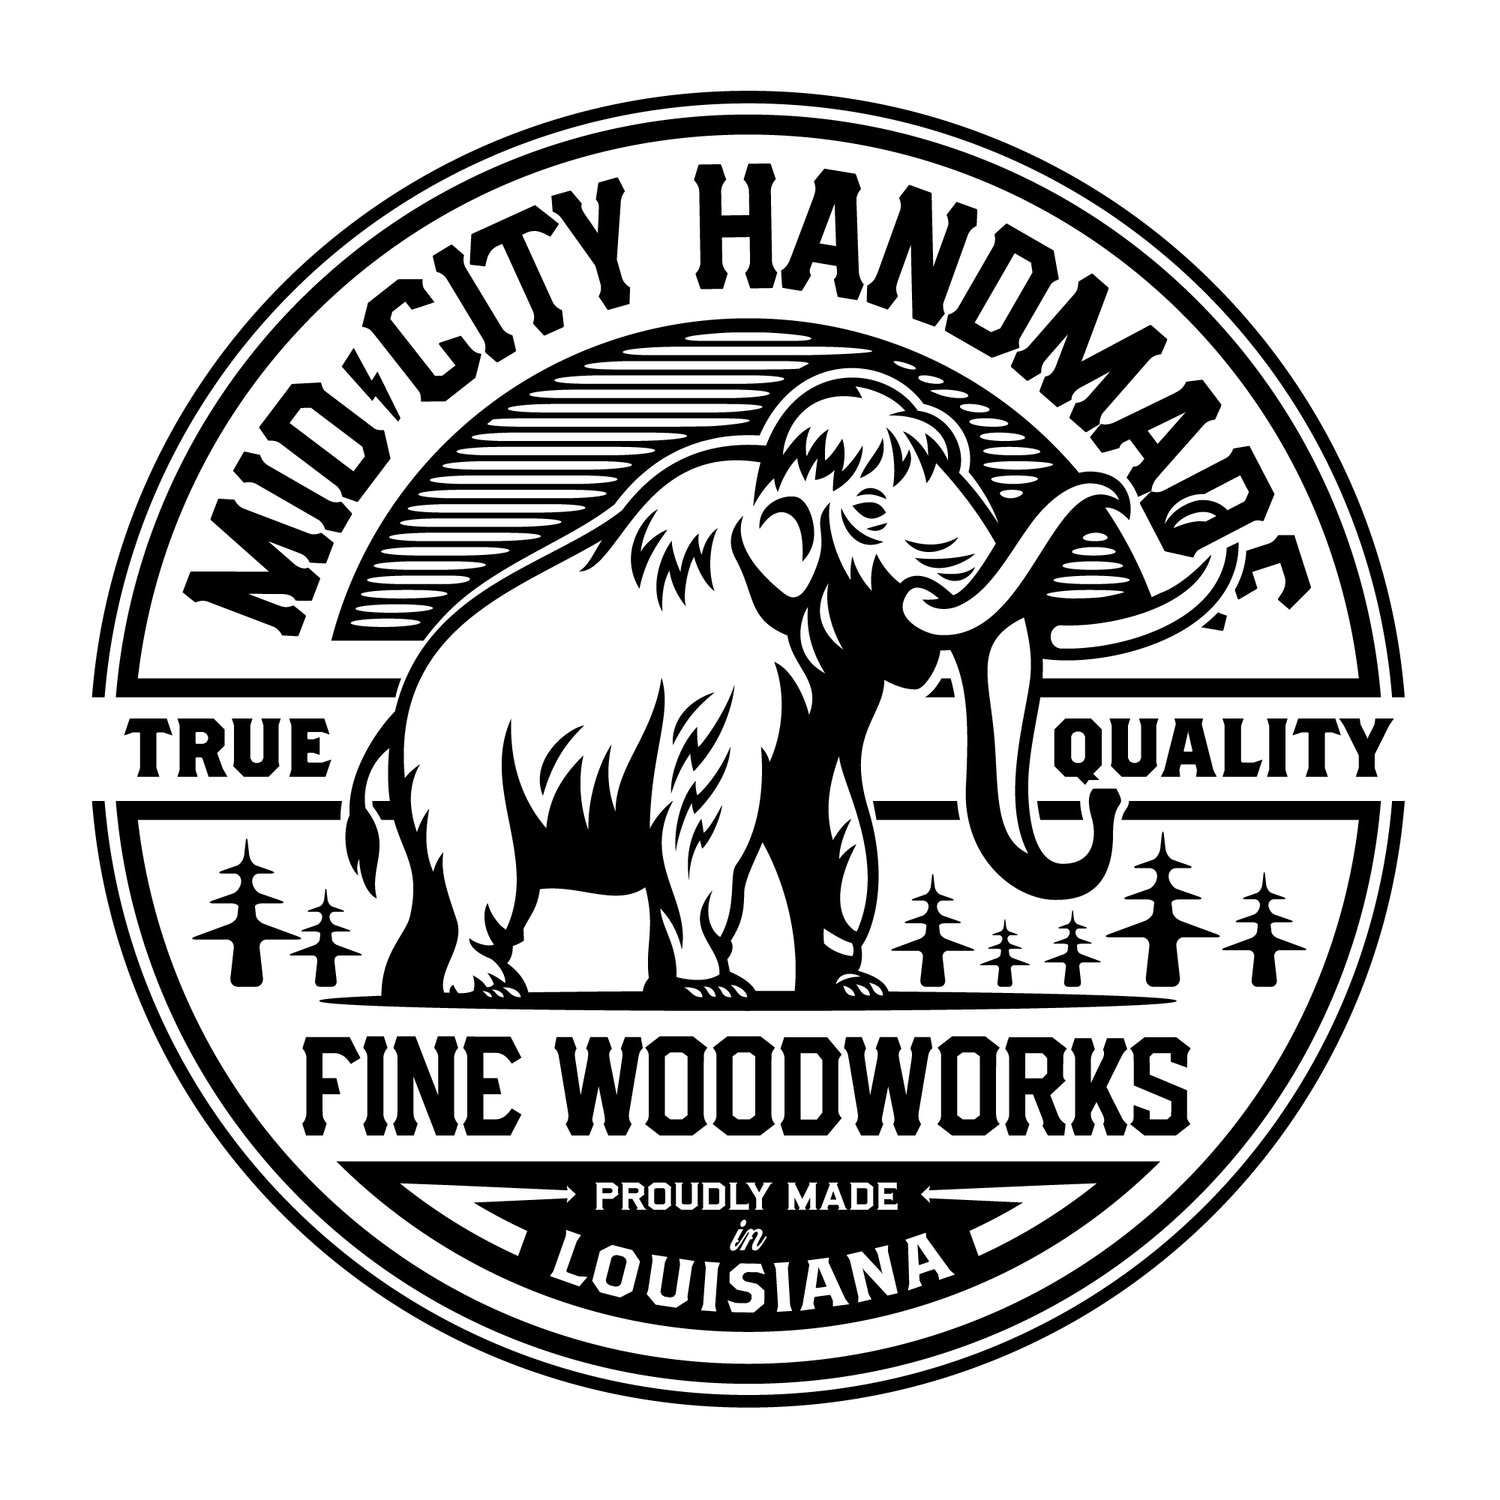 Mid City Handmade